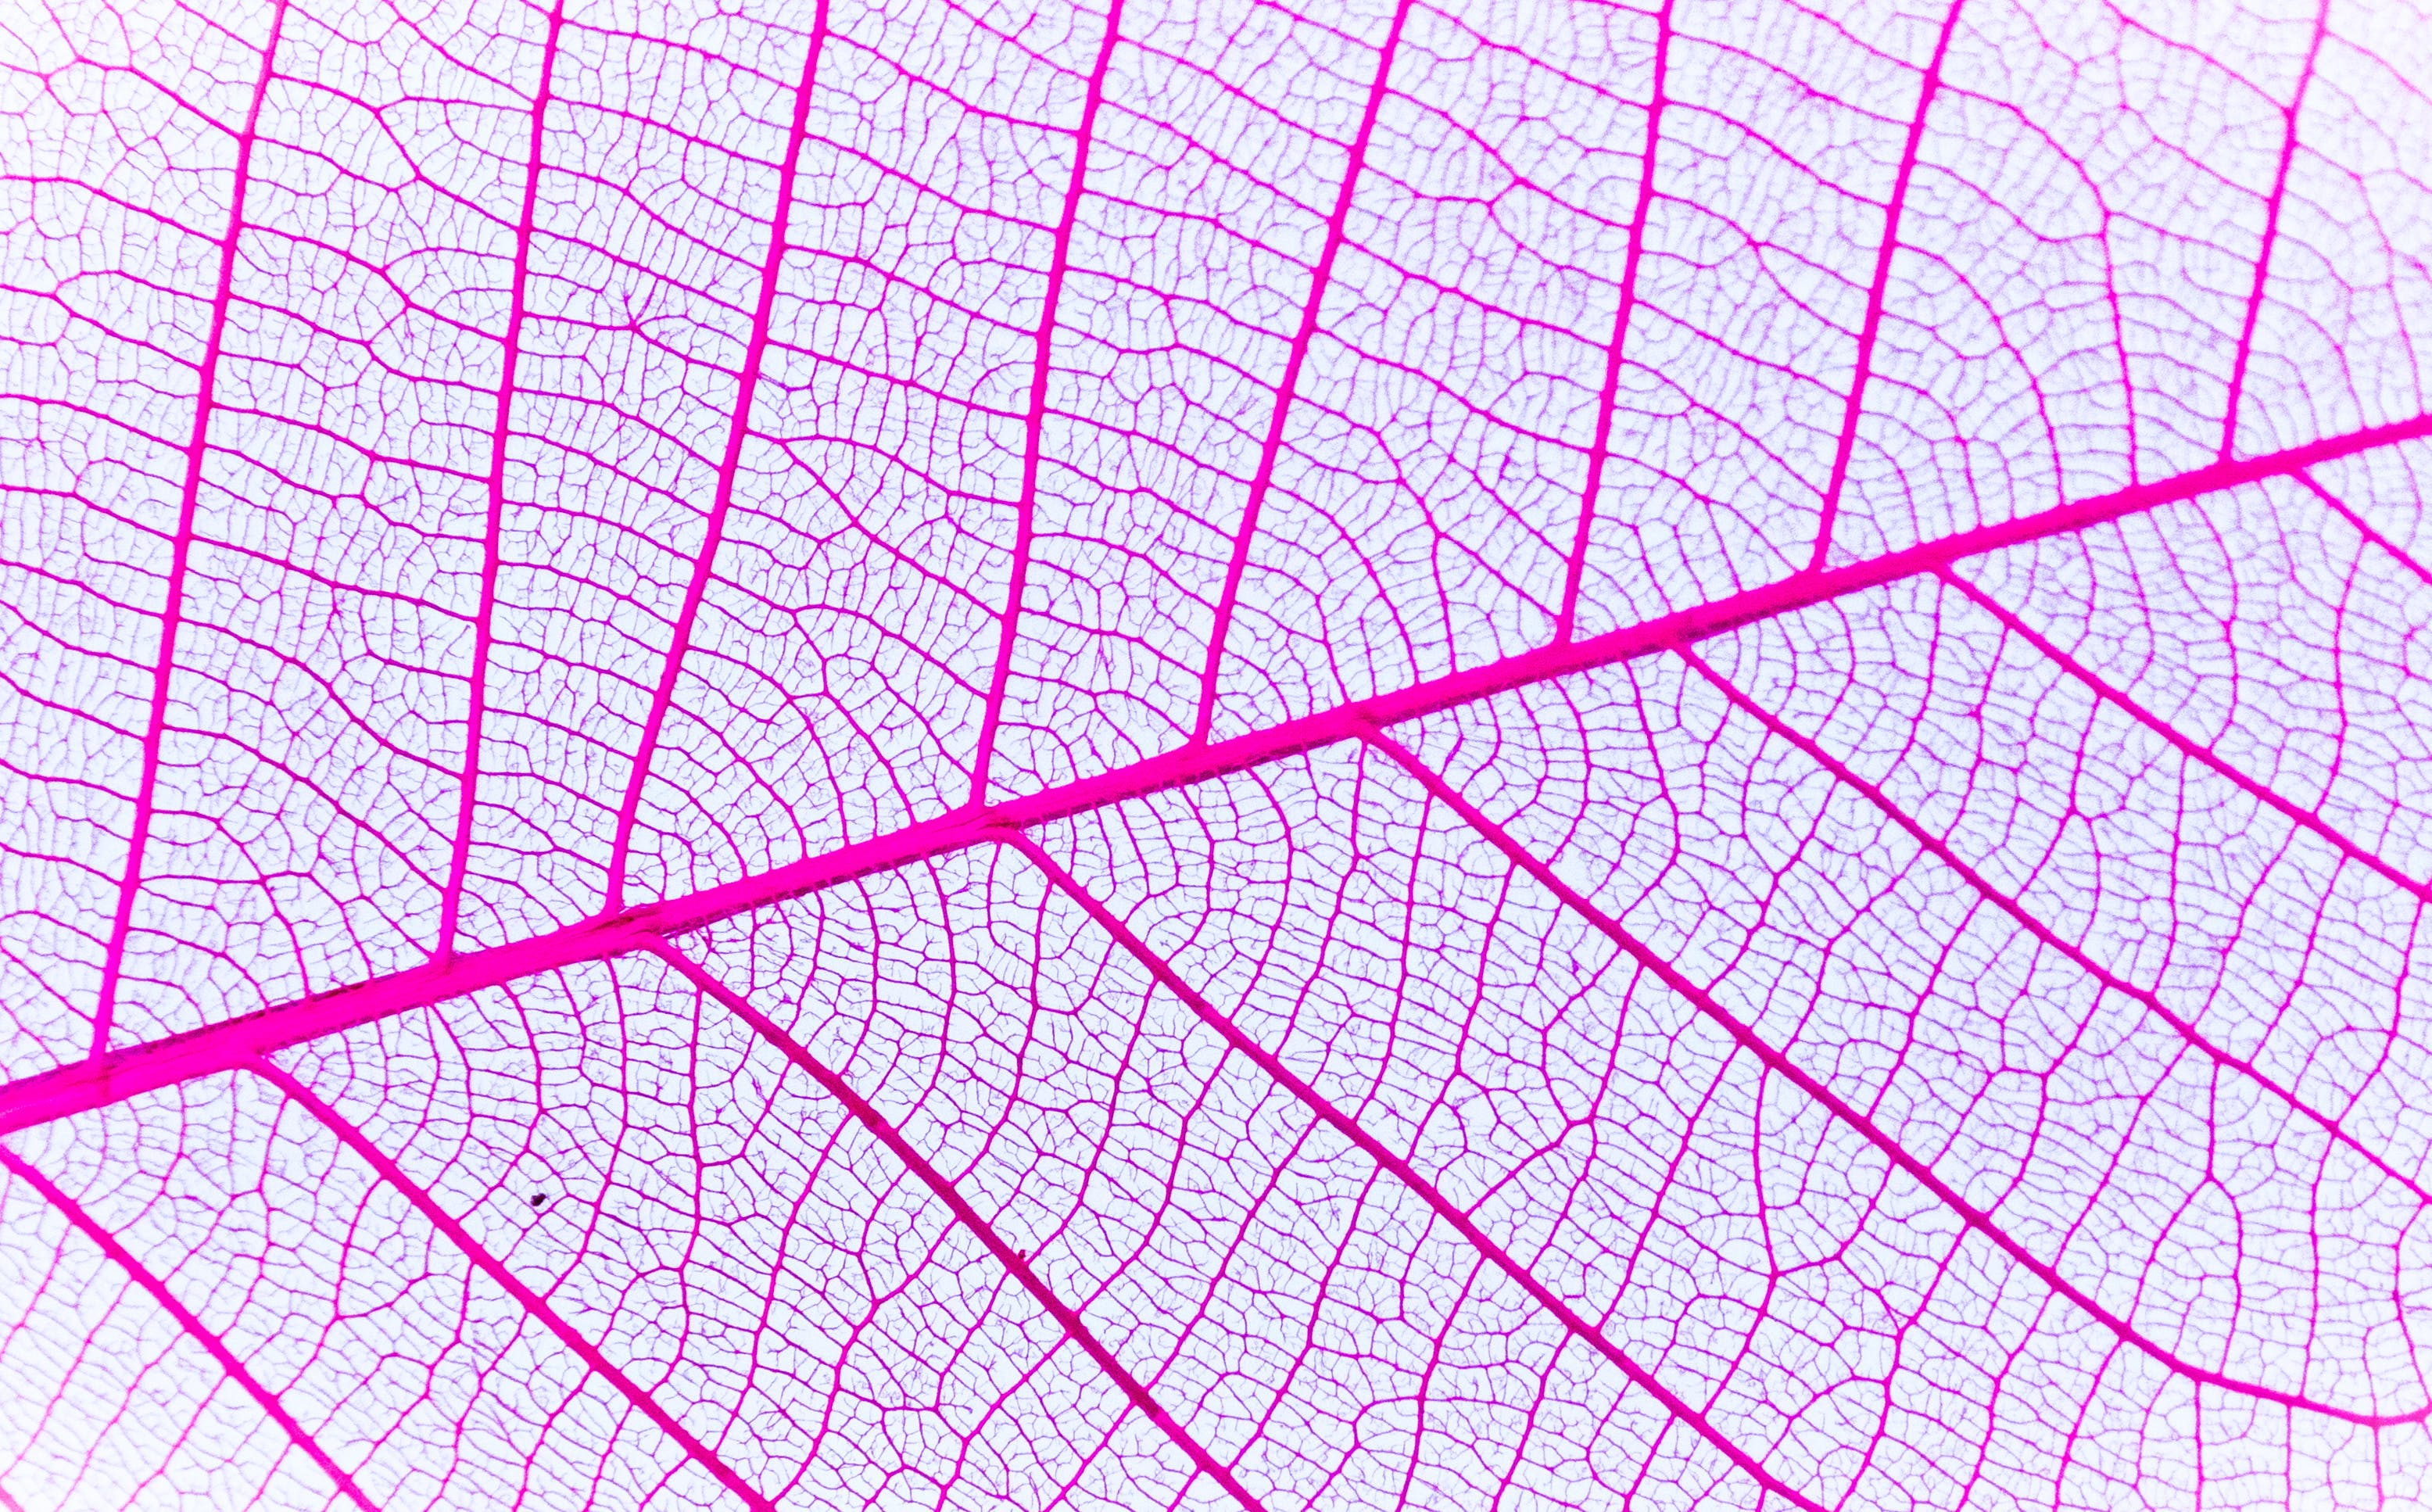 Free stock photo of leaf, close-up, veins, banana leaf